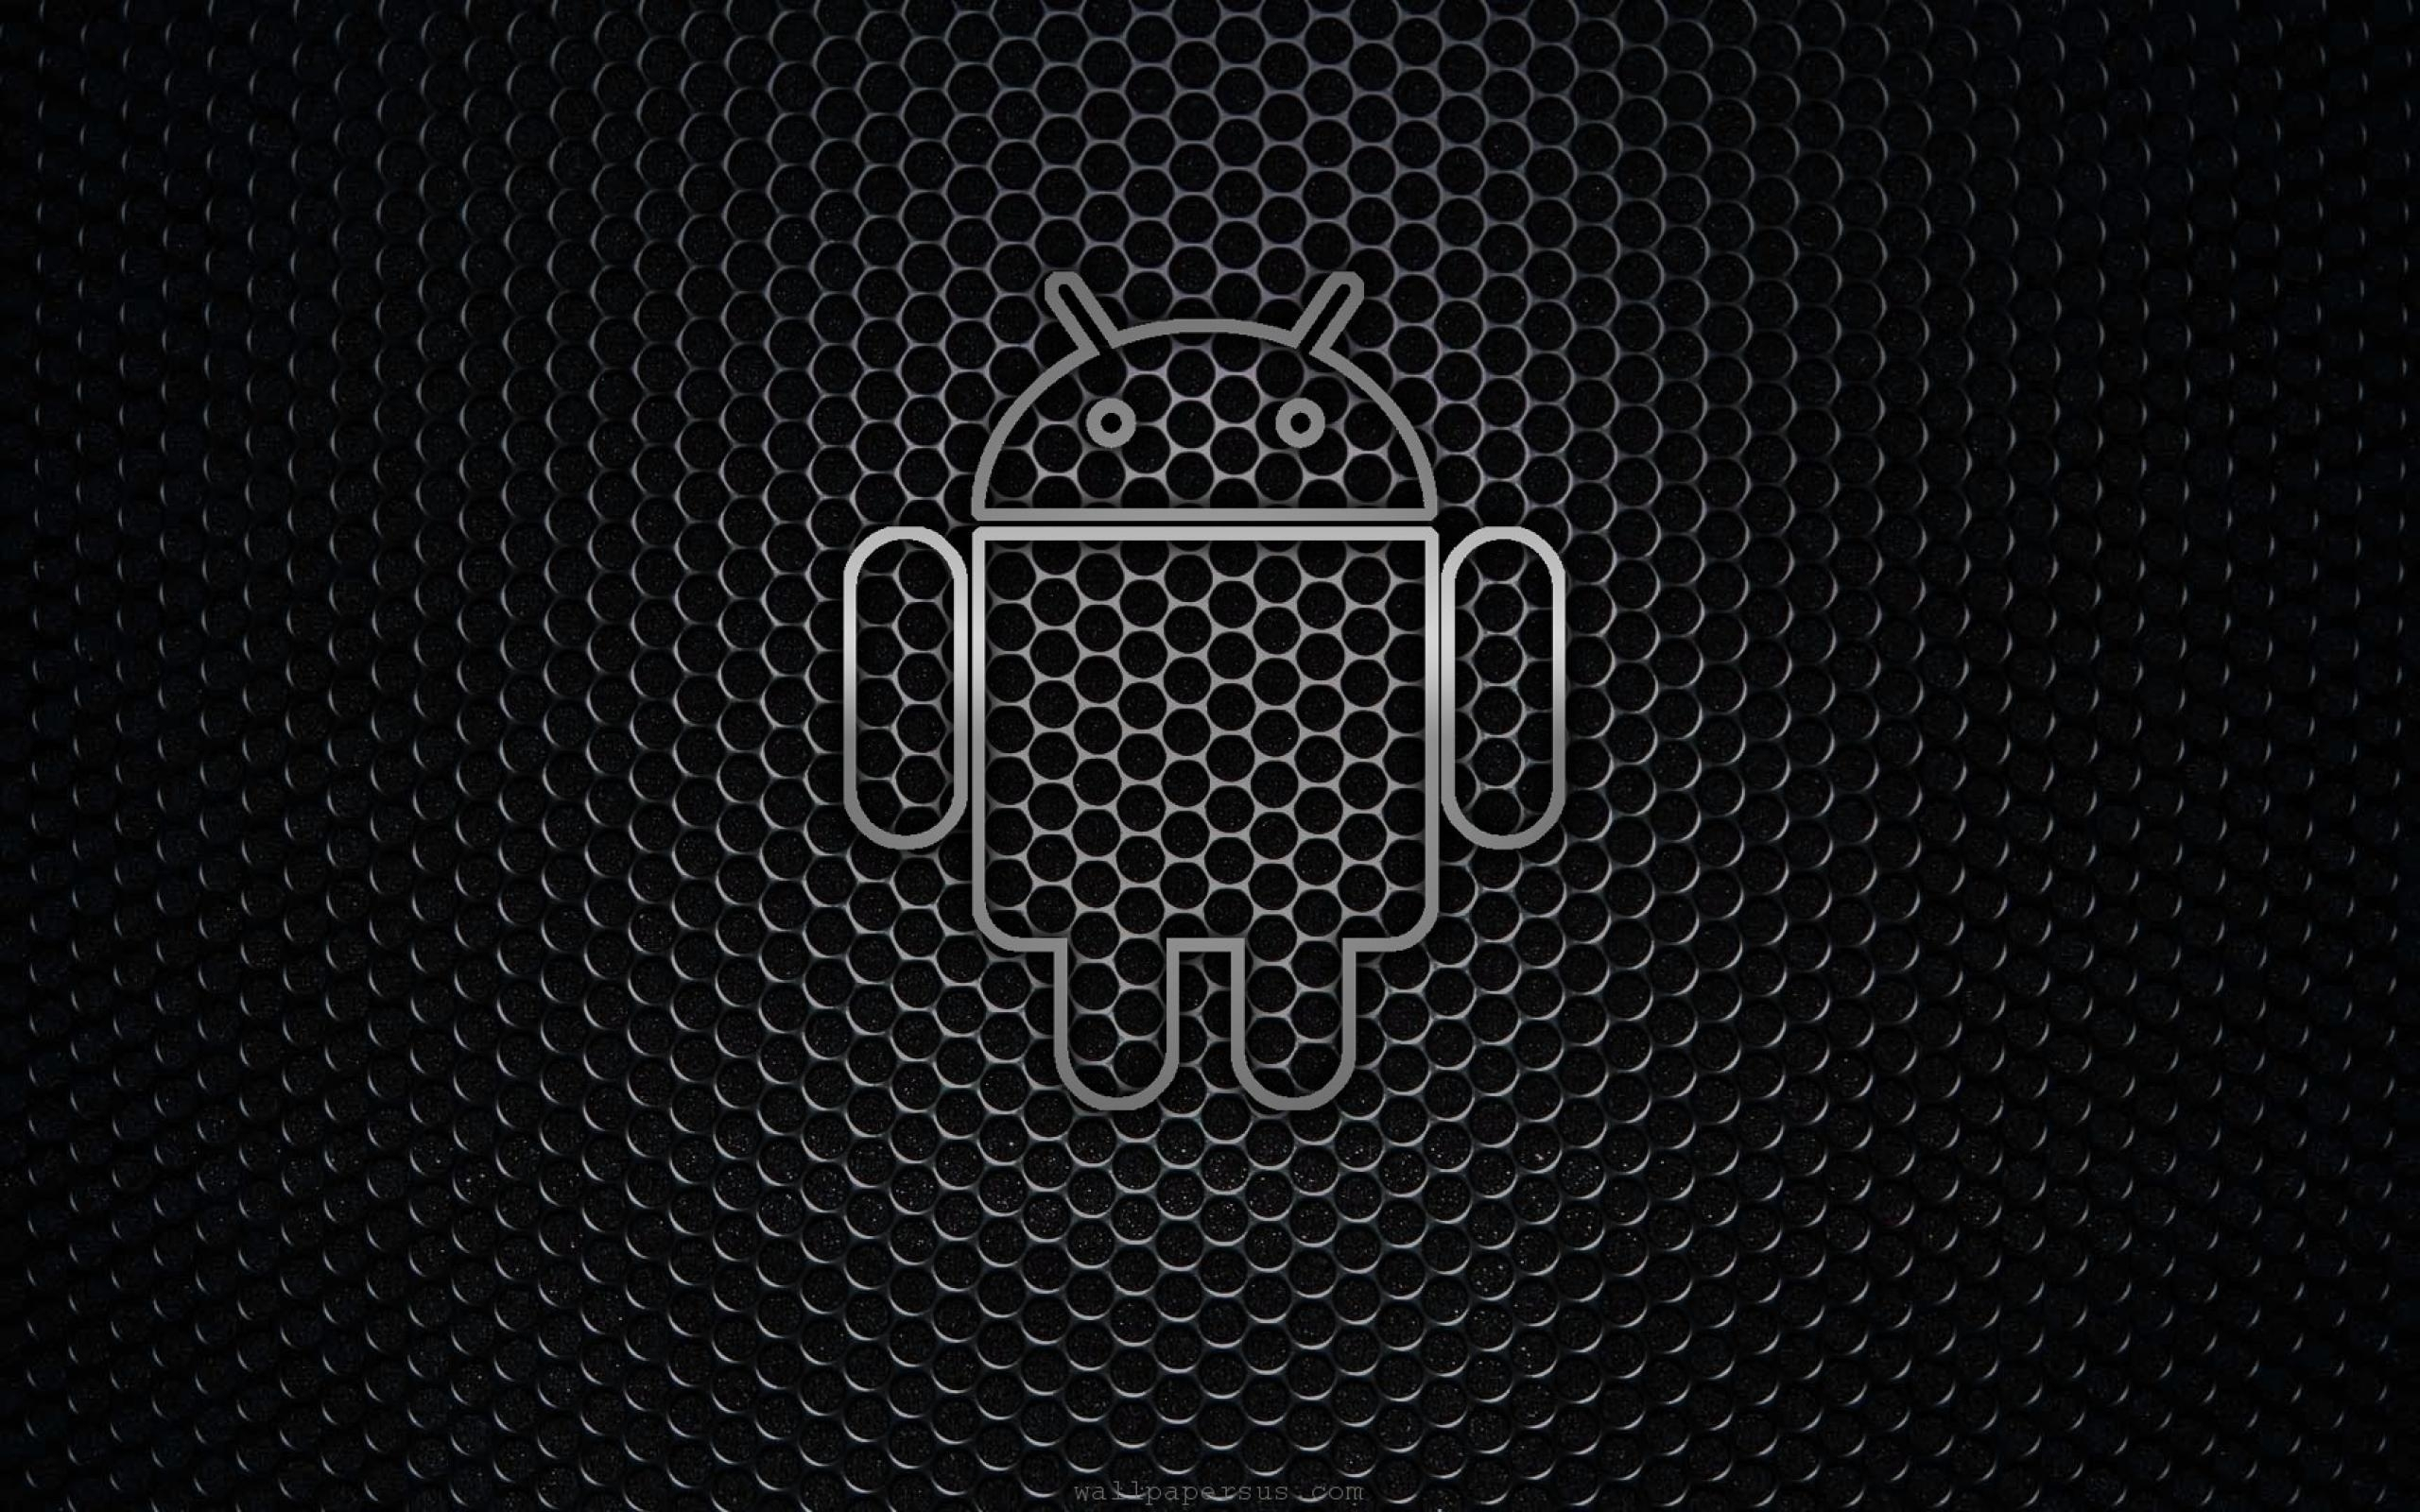 black wallpaper - android apps on google play | epic car wallpapers